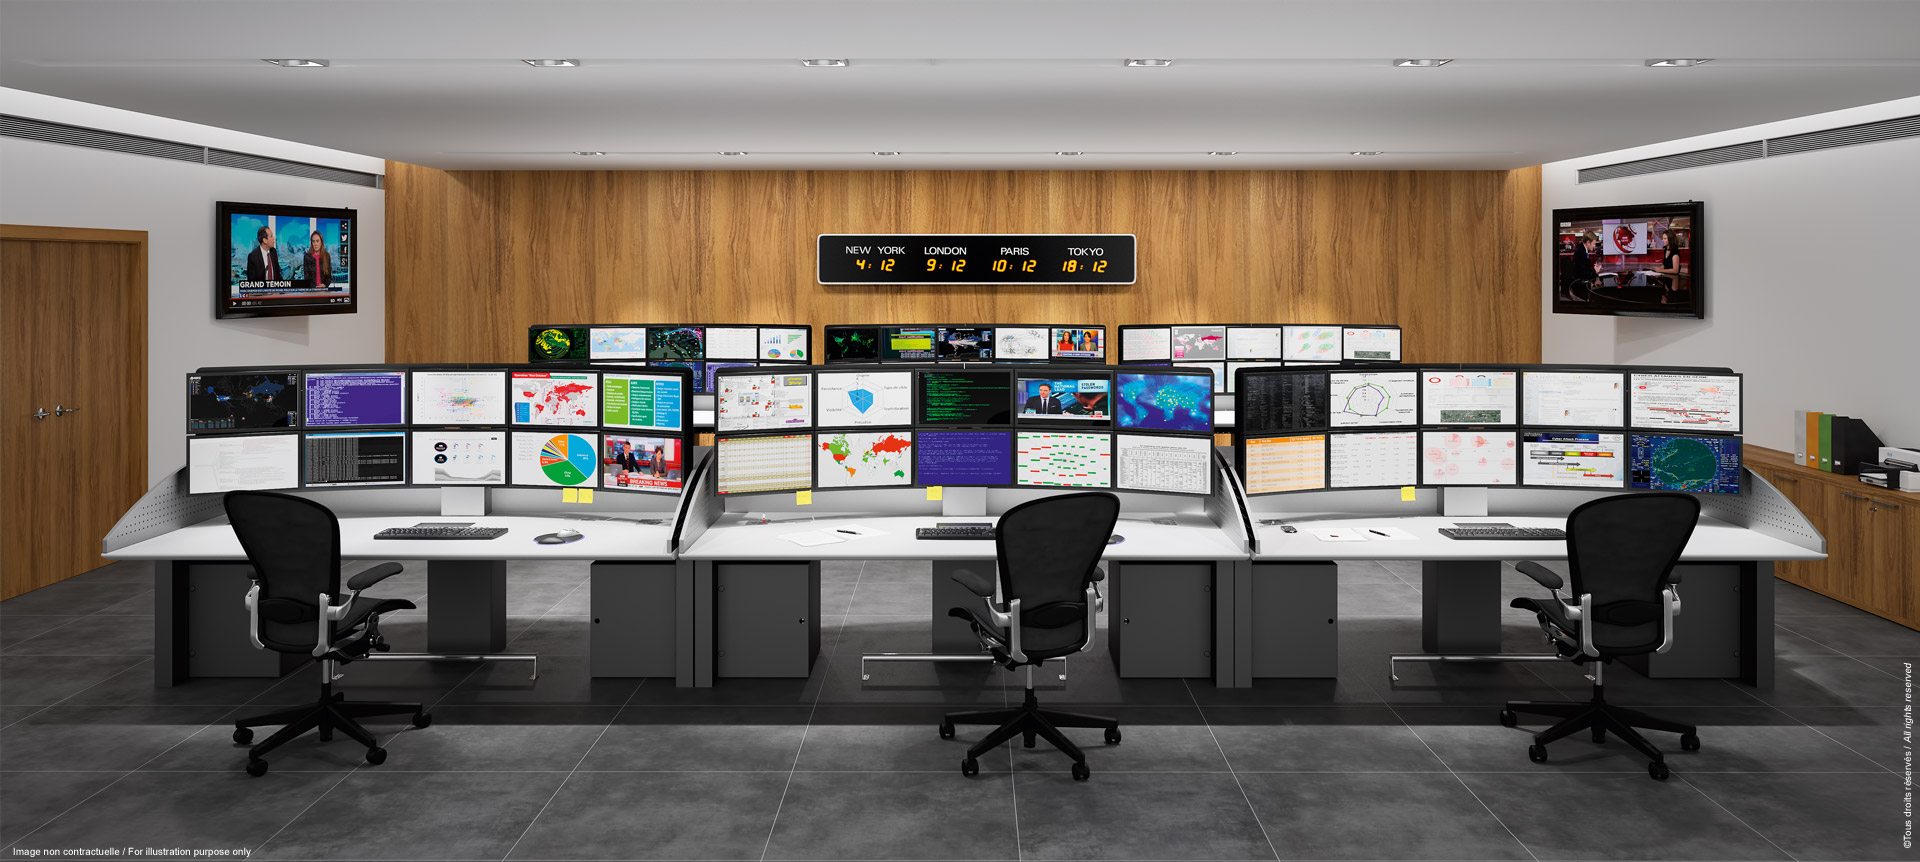 Ergonomic multiscreen consoles for control room